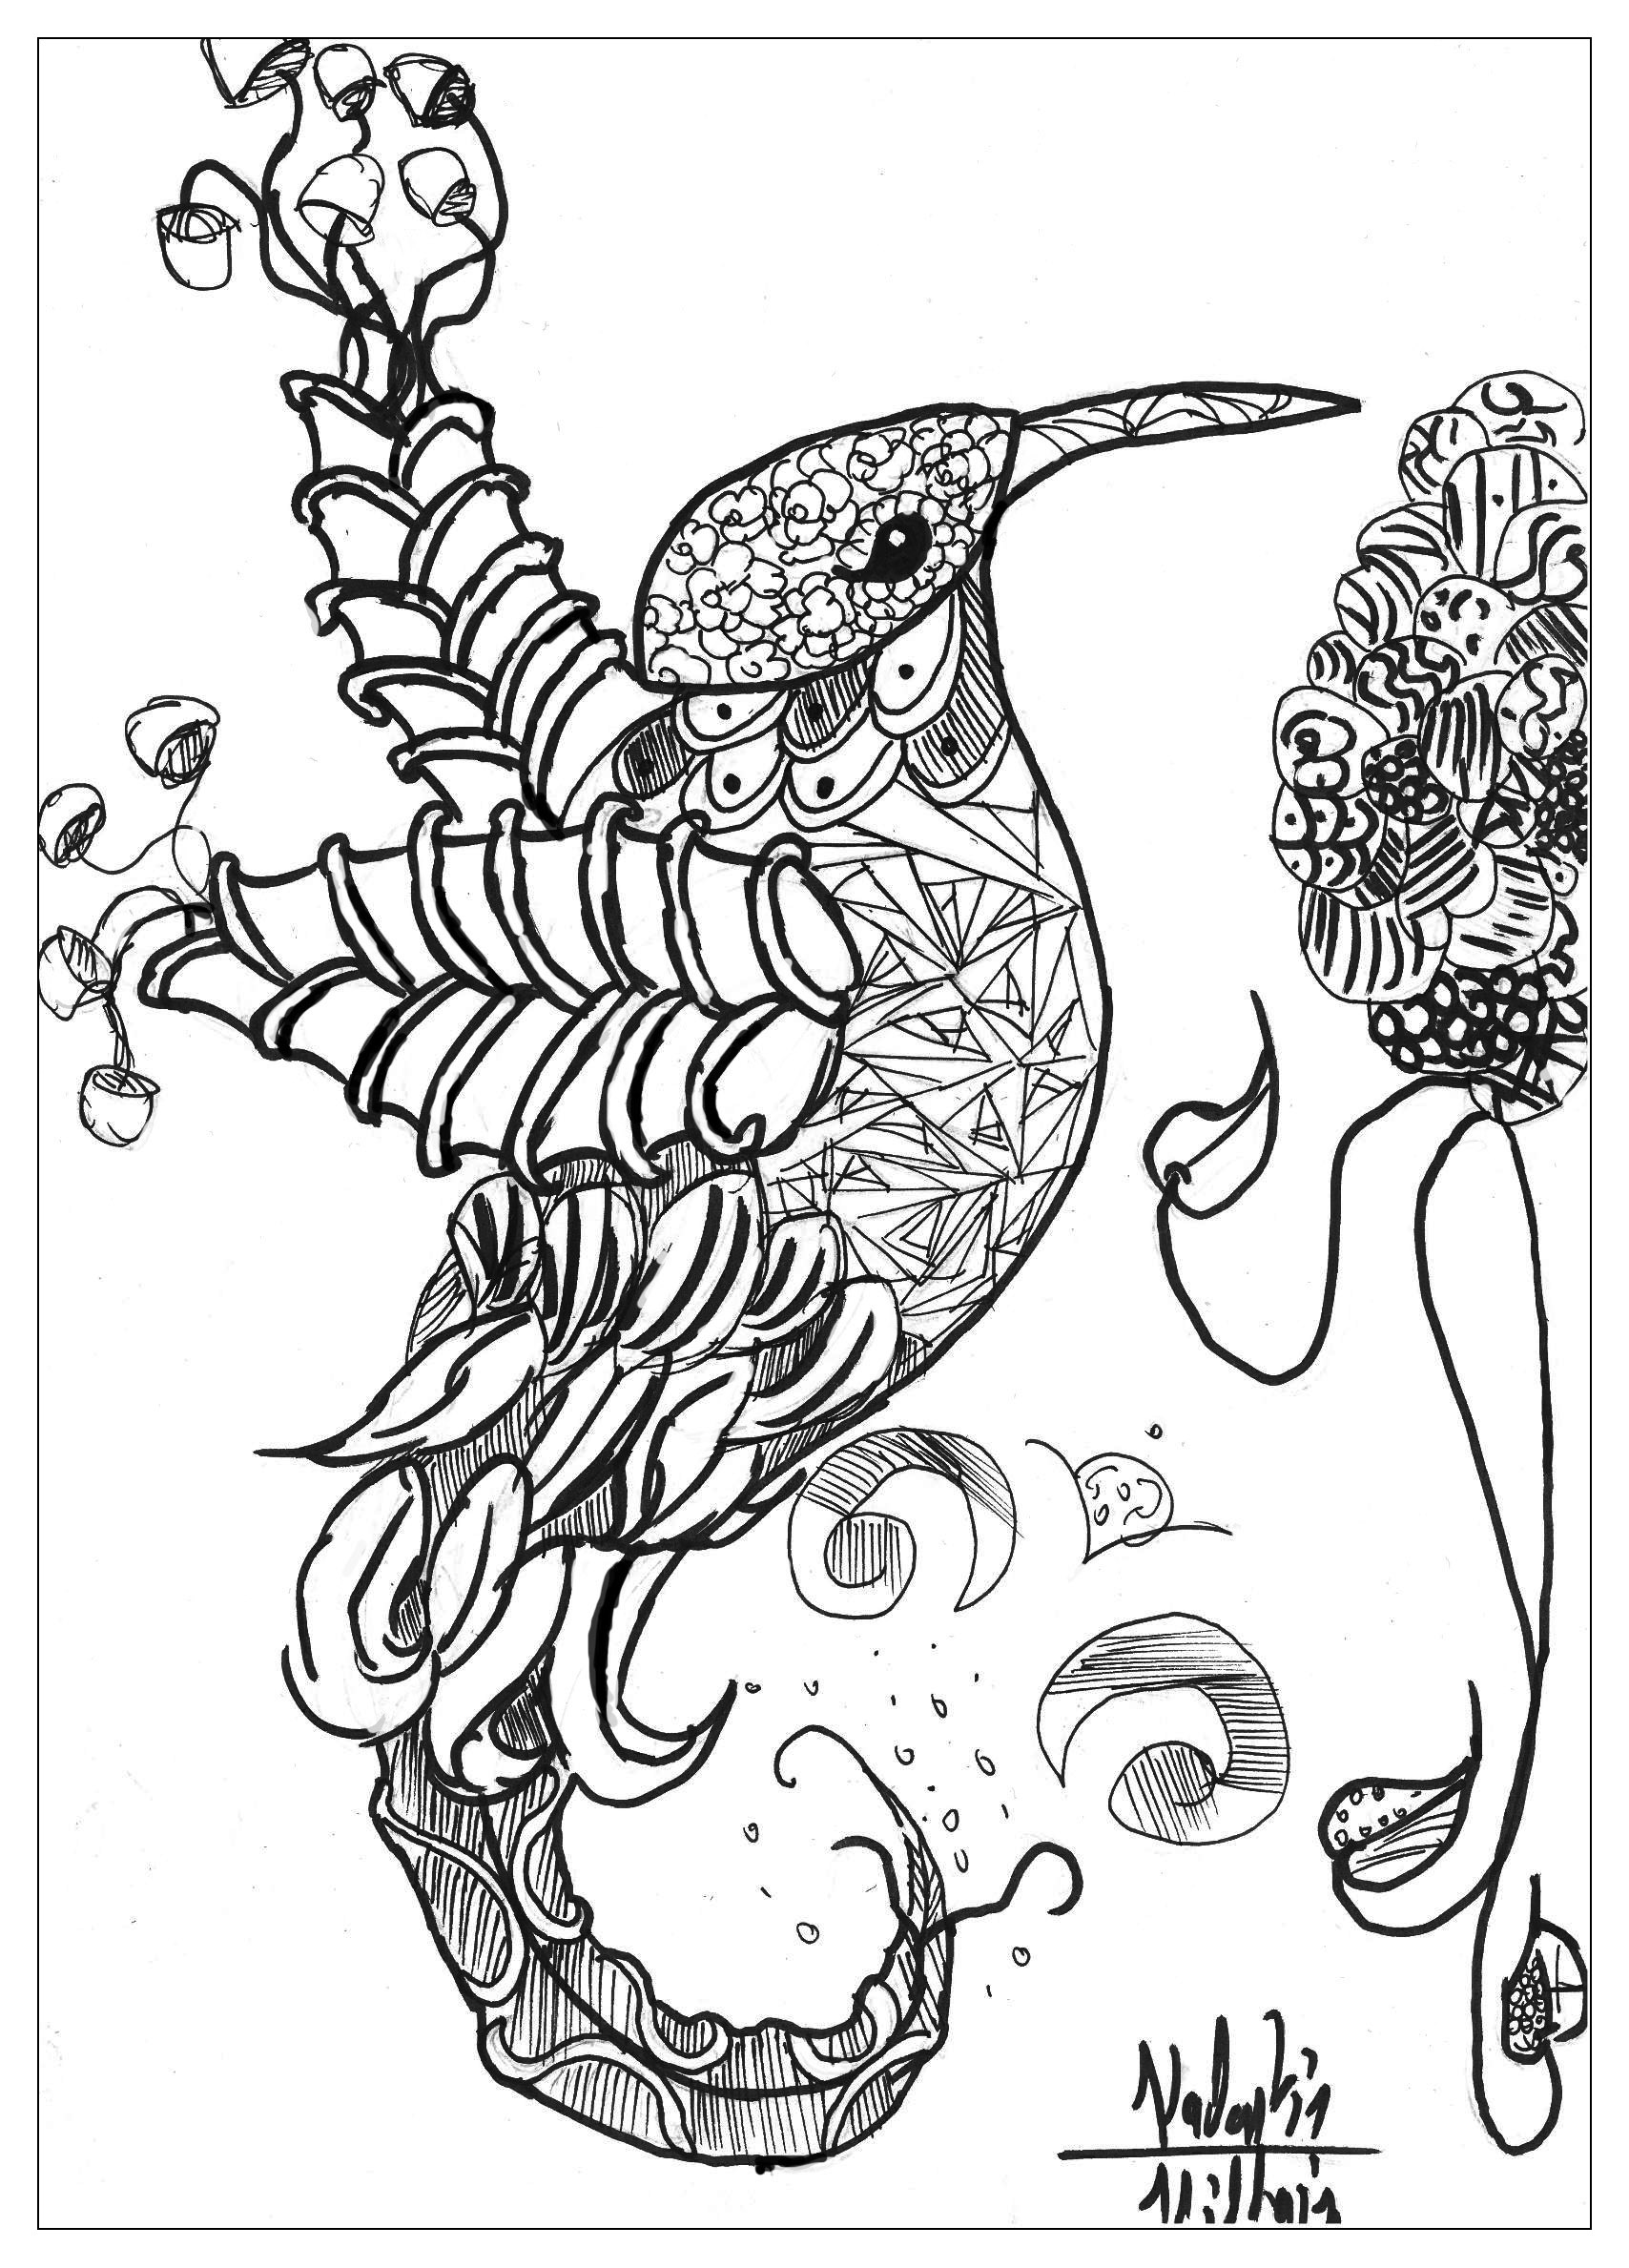 this bird have a particular thing no from the gallery animals artist - Animal Mandala Coloring Pages Easy